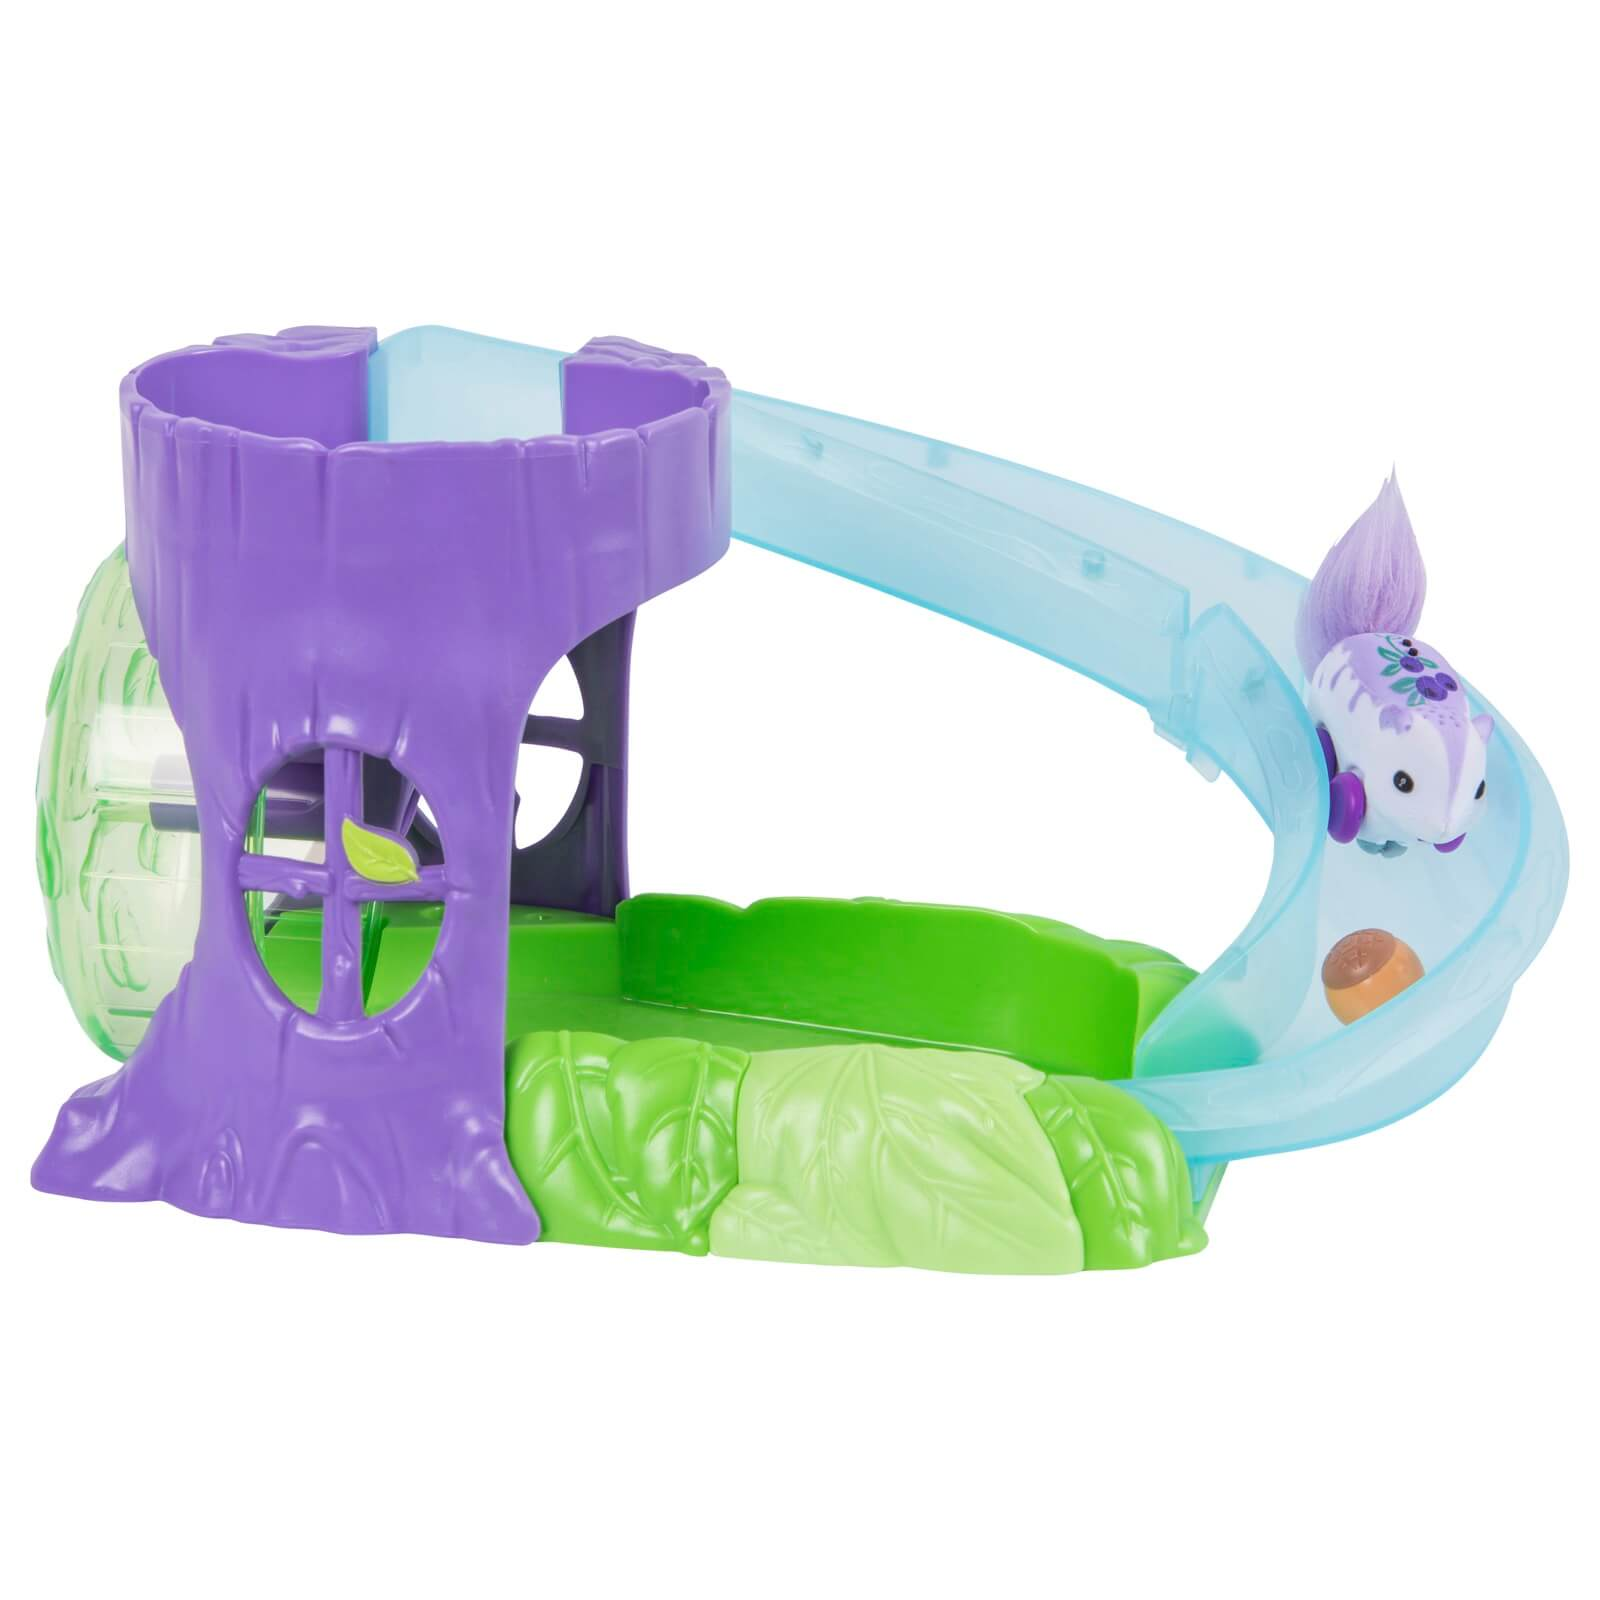 Little Live Pets Fluffy Friends Playset - Series 1